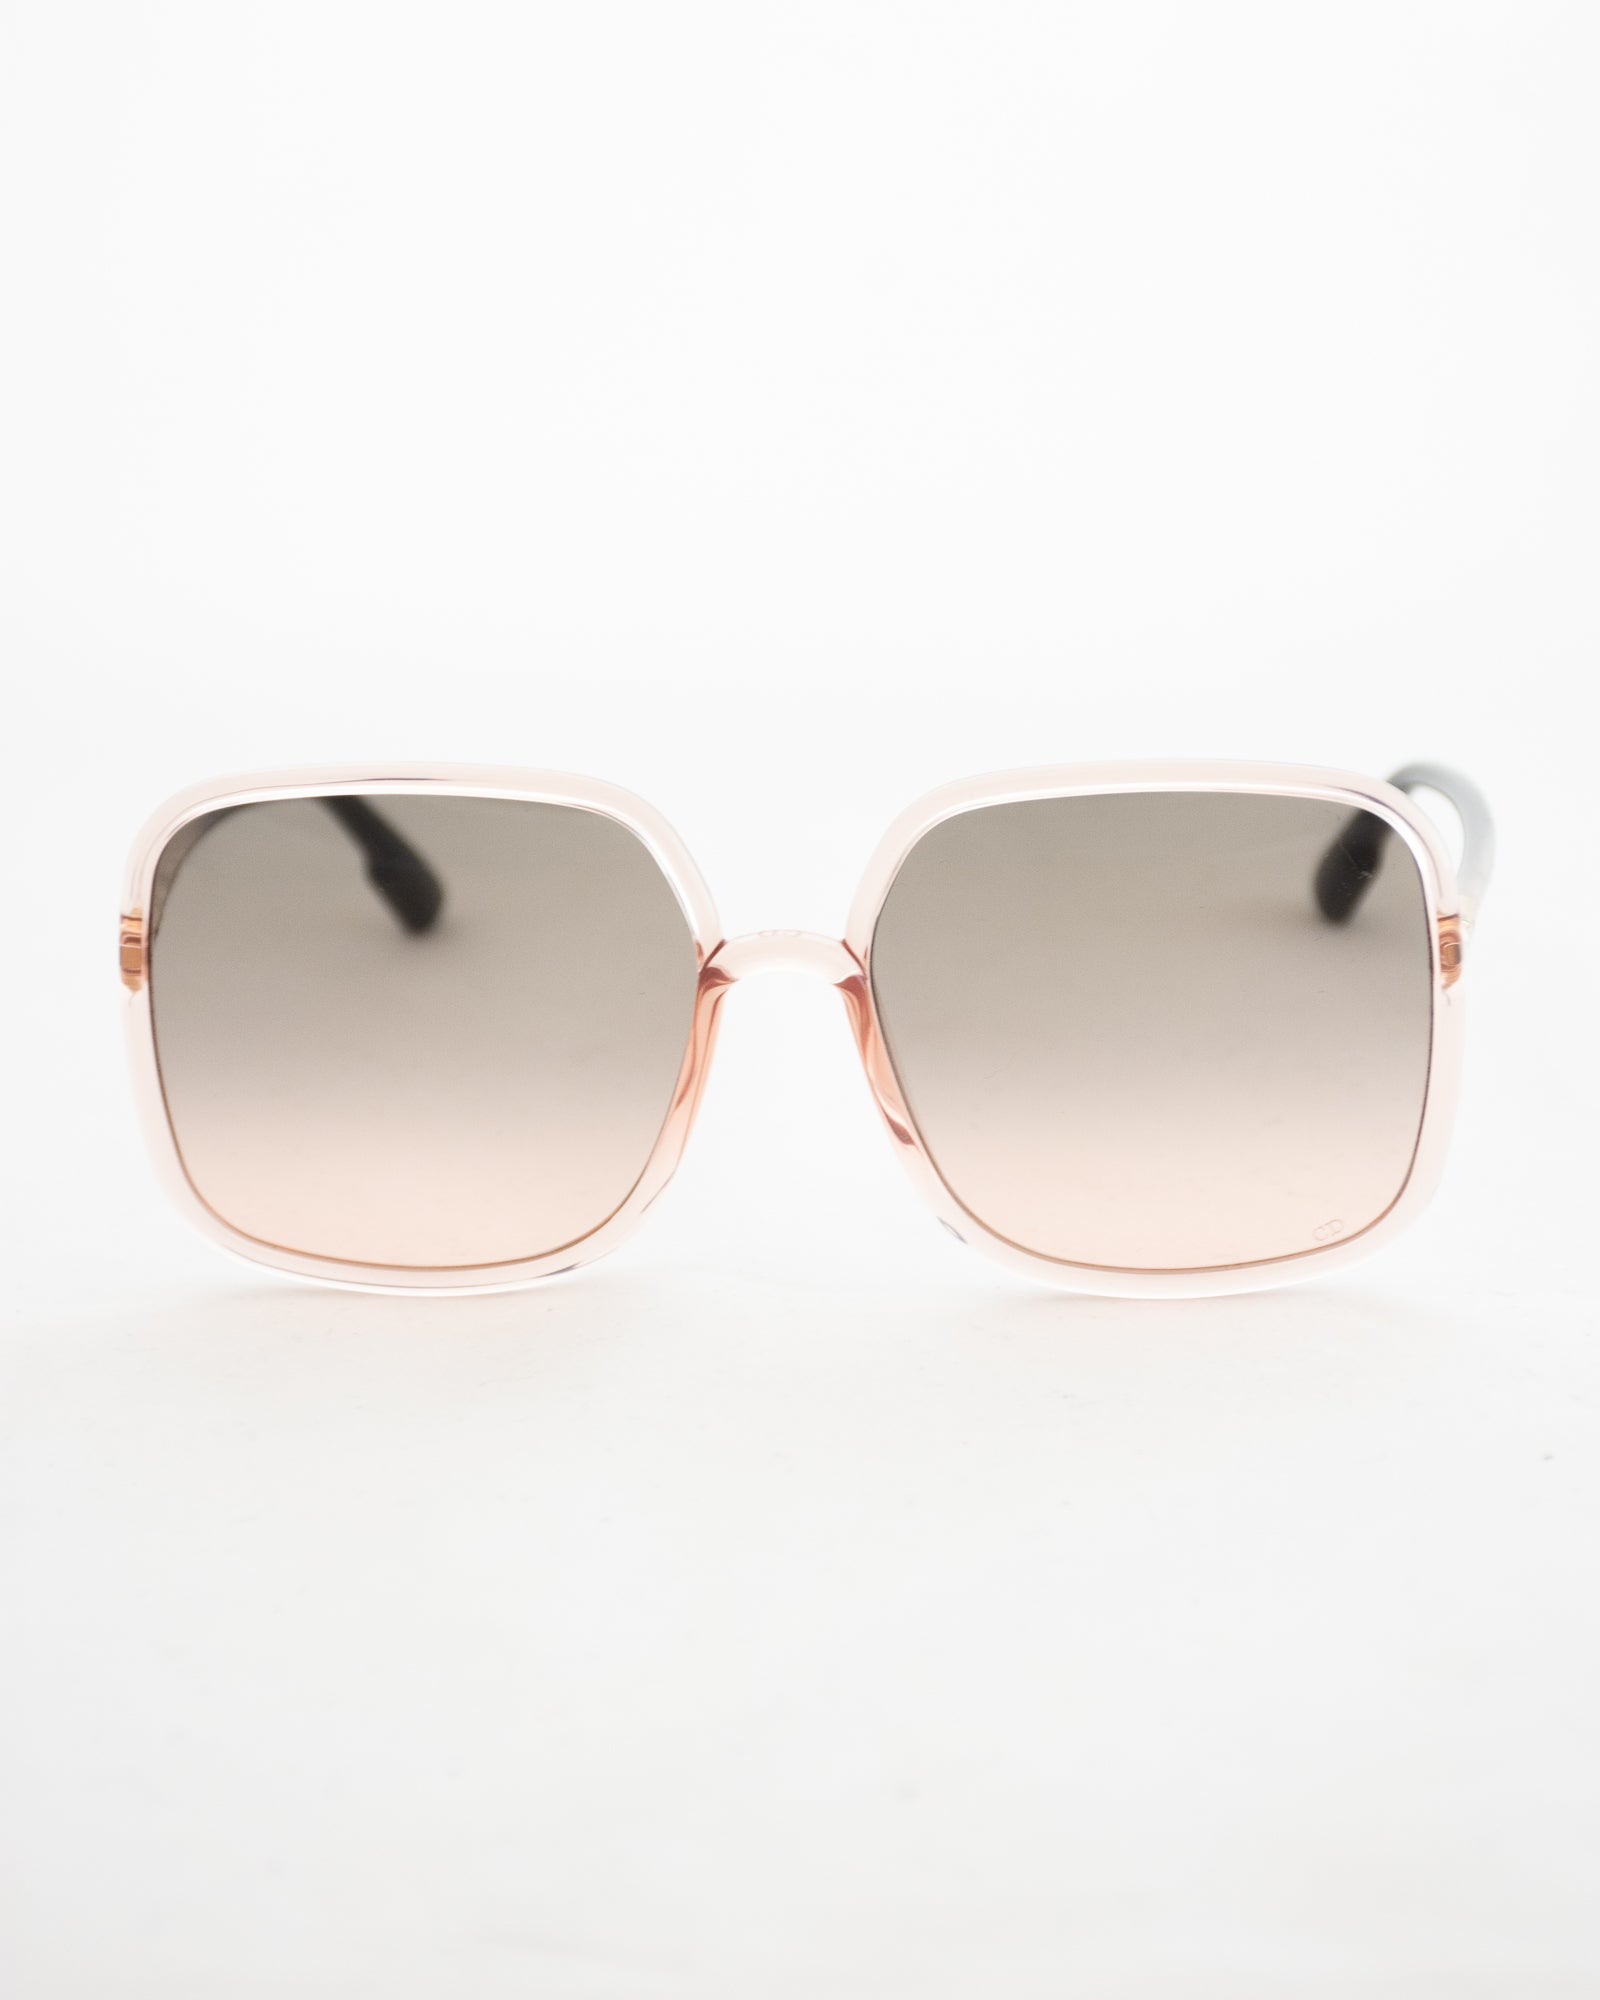 DIOR HOMME Sostellaire Sunglasses